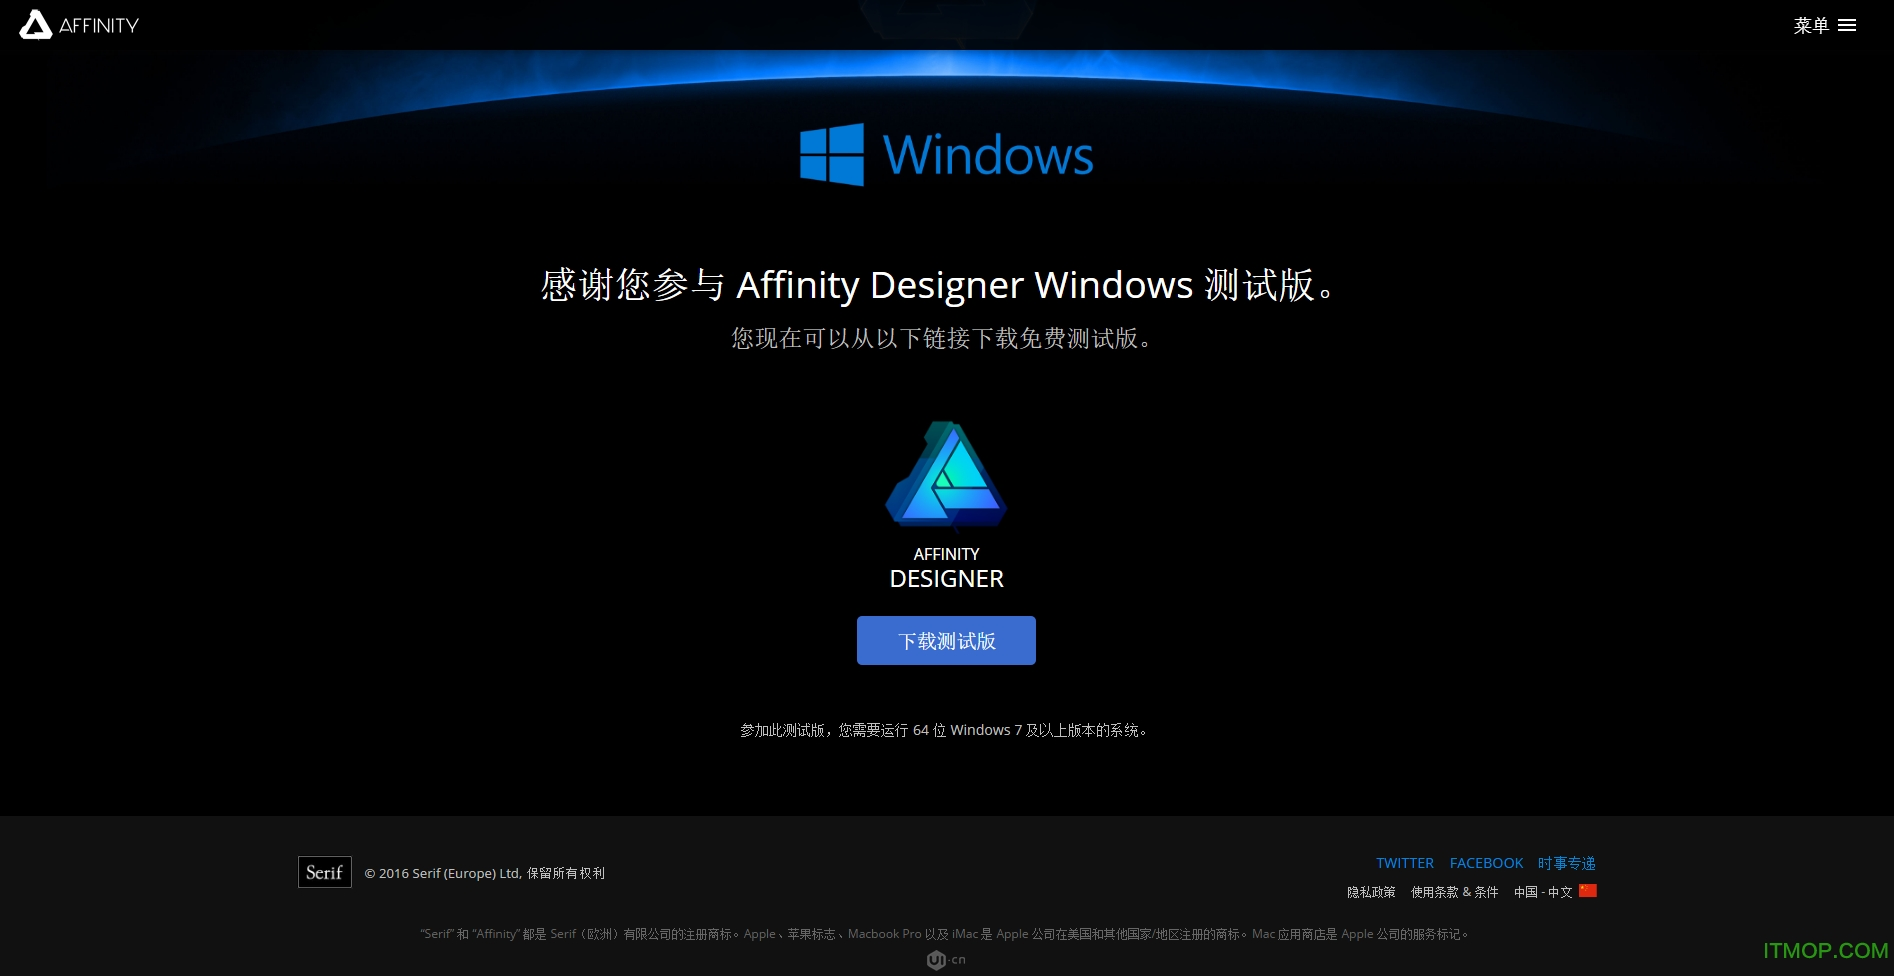 affinity designer windows�ƽ�� v1.7.0 ��������pc�� 0